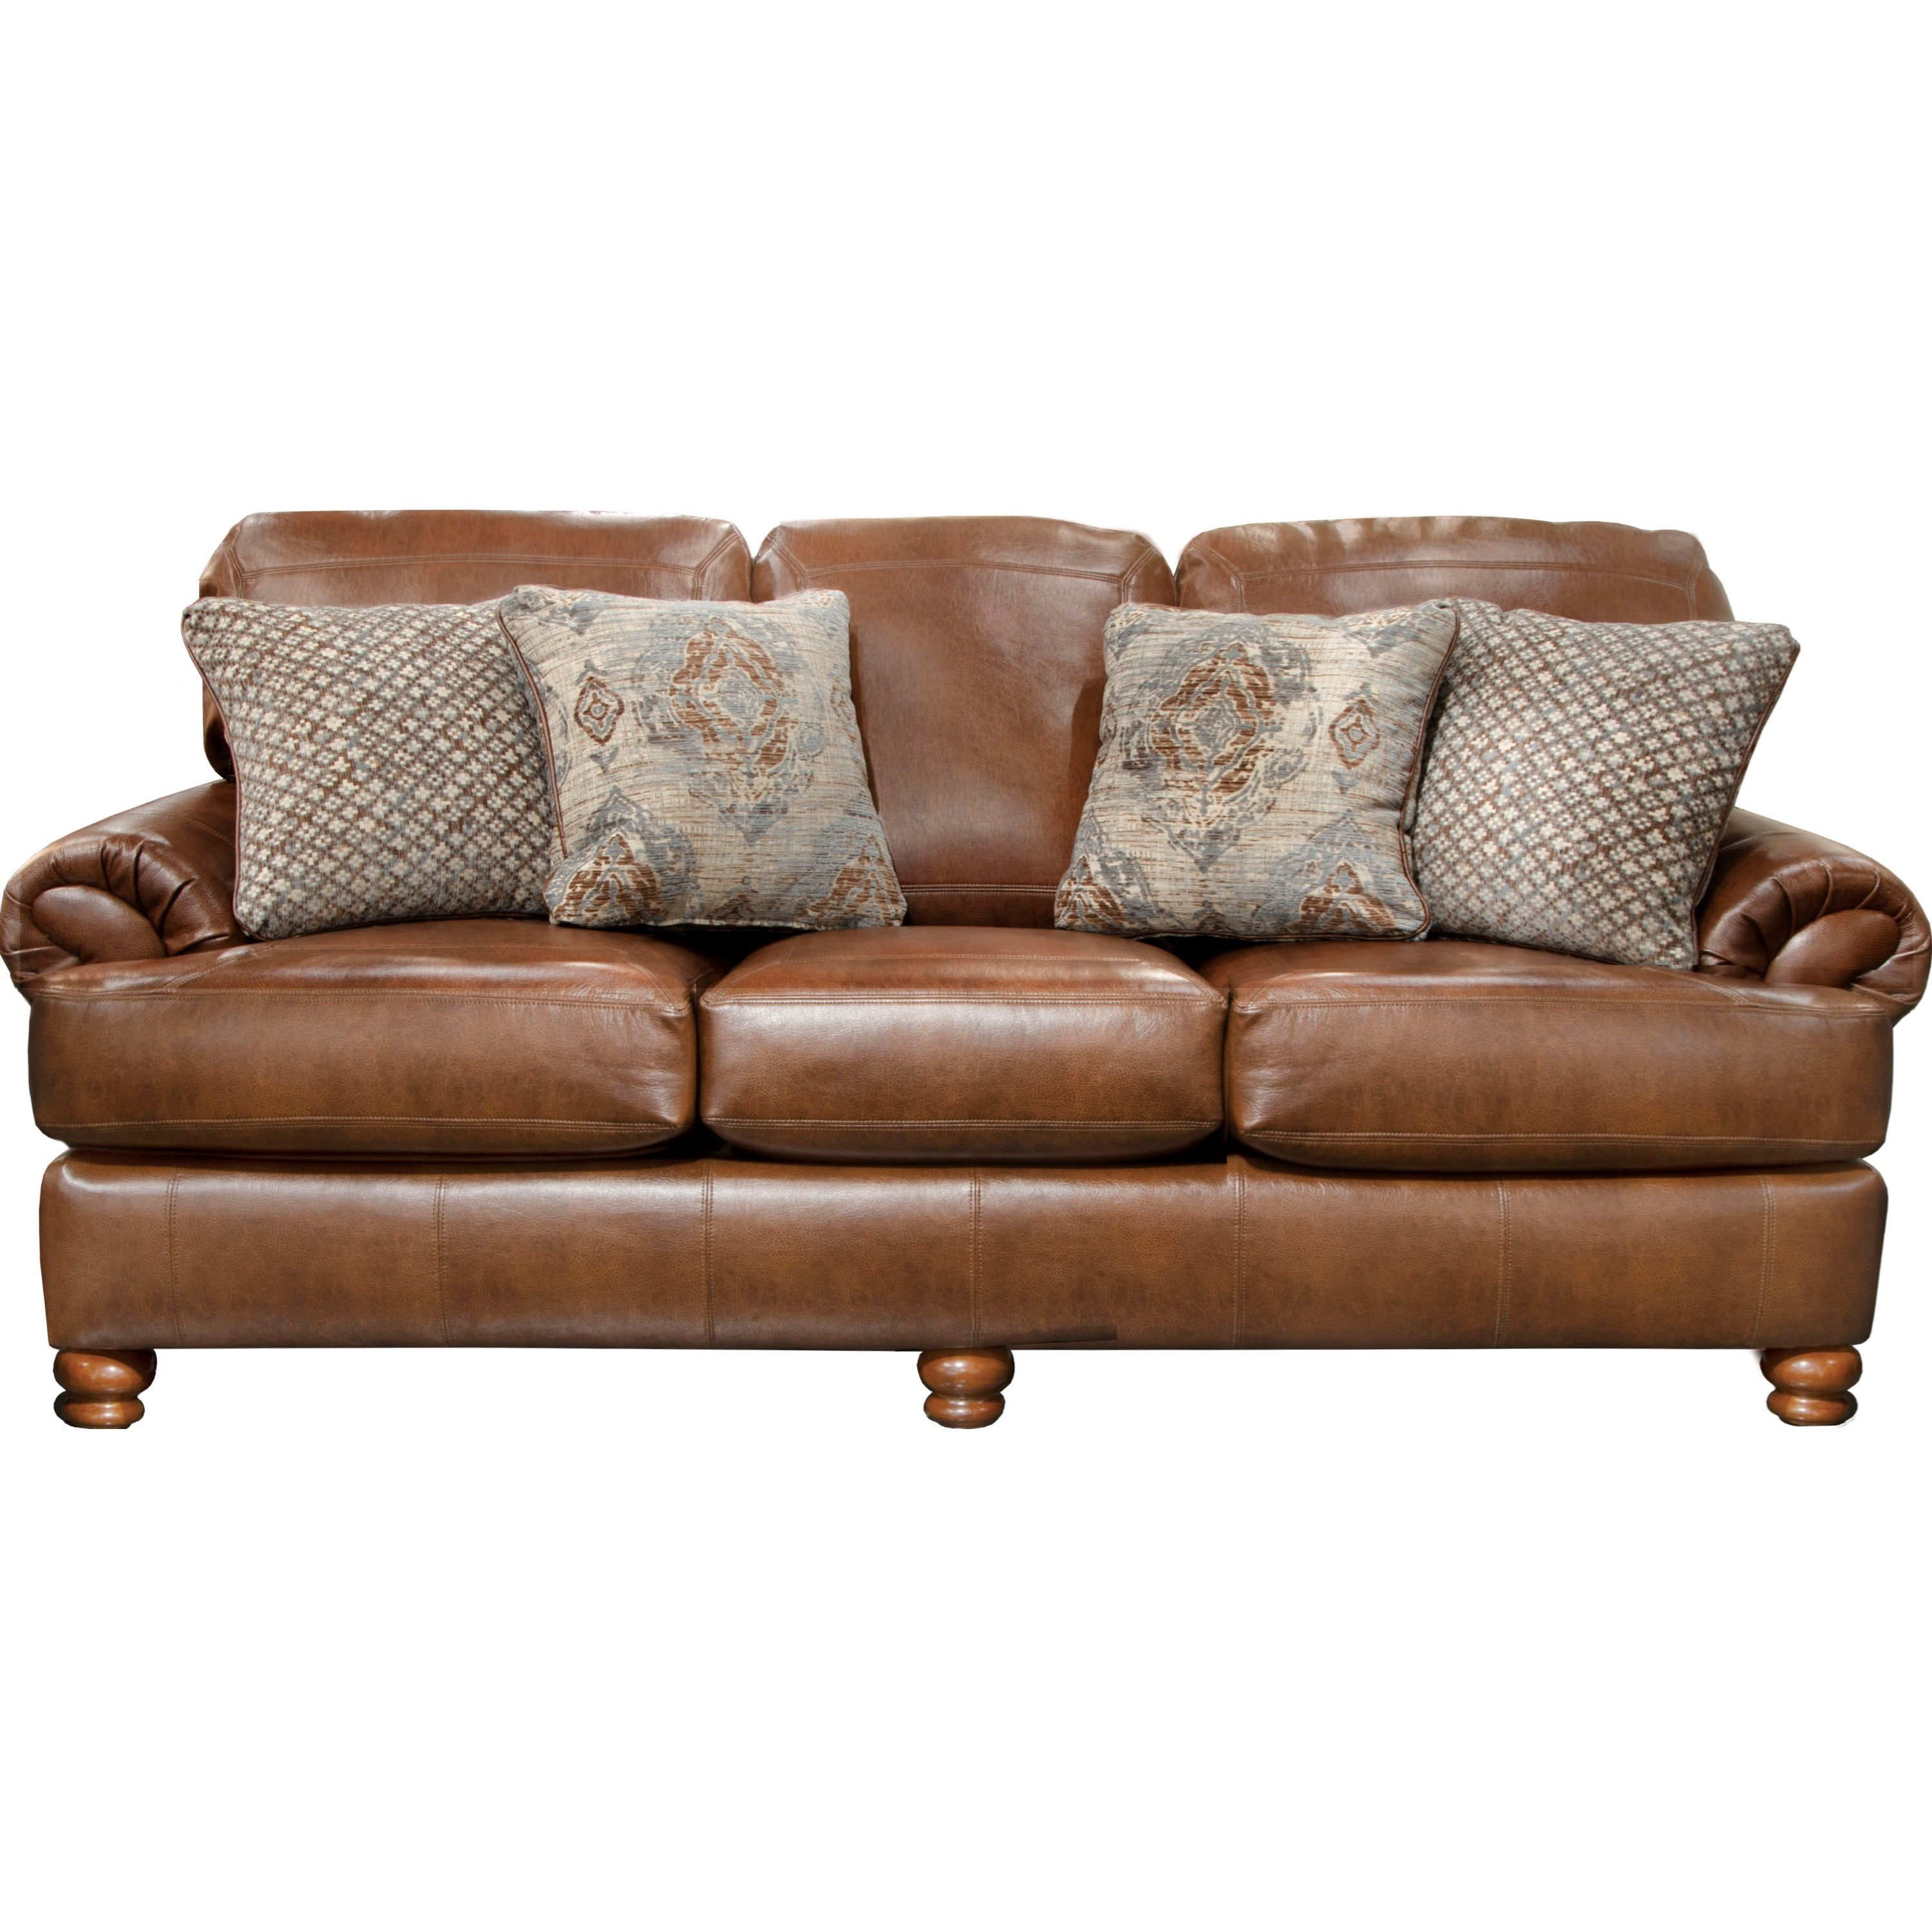 Jackson Furniture Southport Stationary Sofa - Item Number: 436703-Chestnut